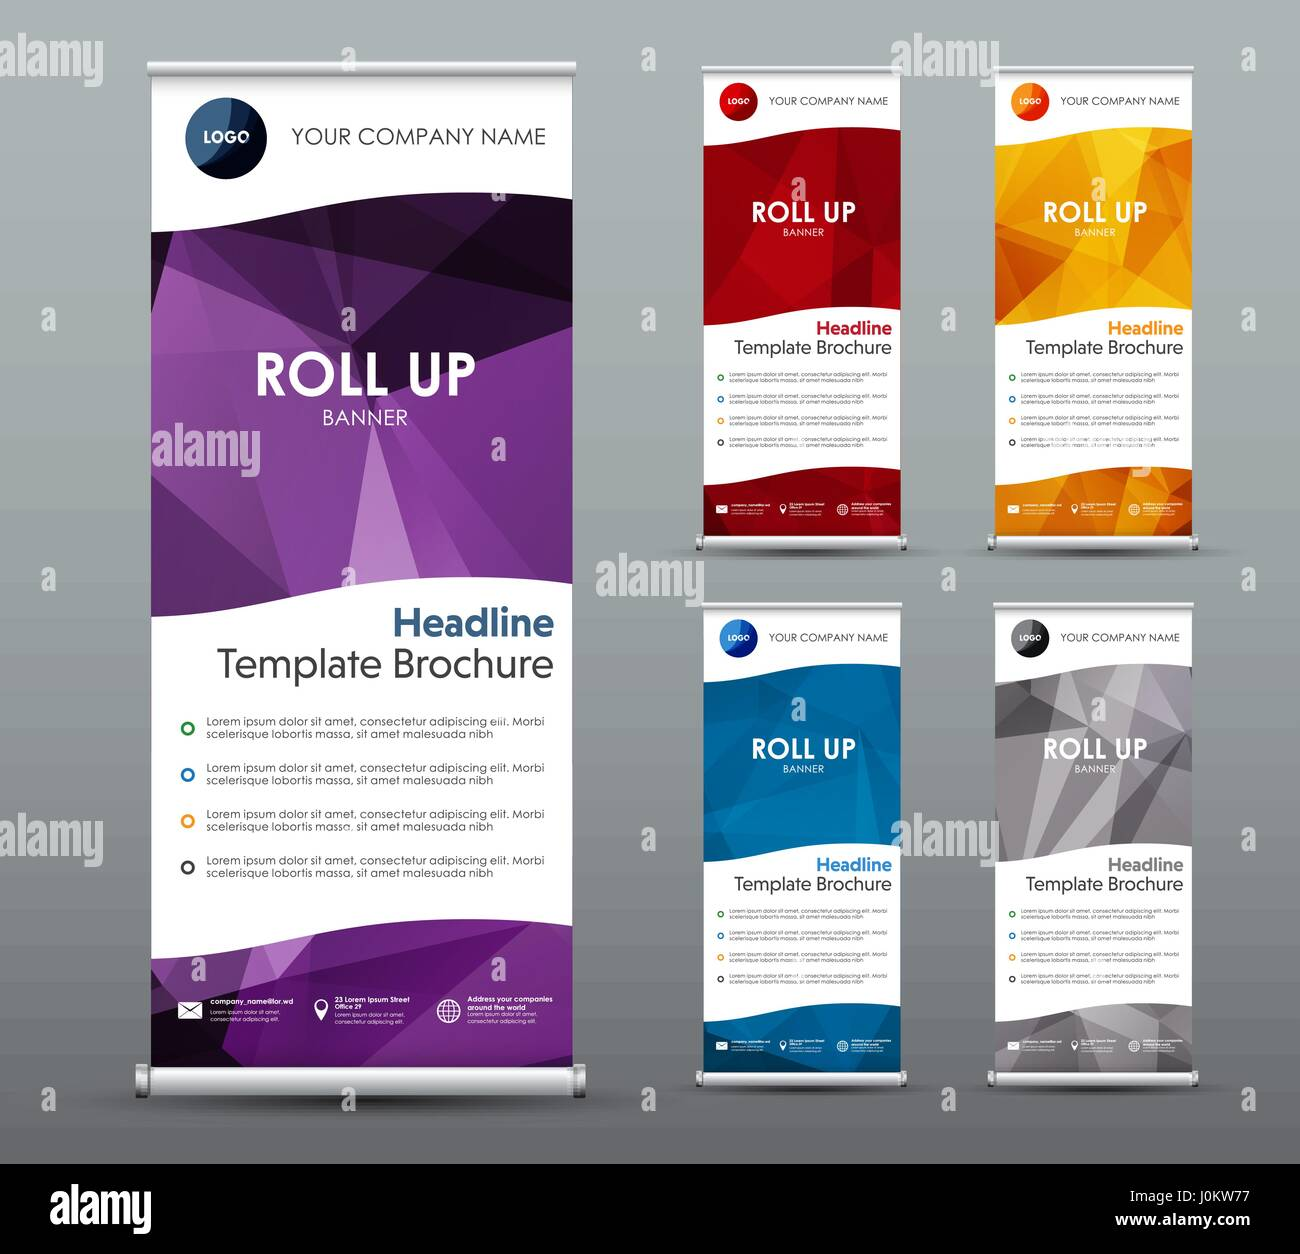 pop up banners stock photos pop up banners stock images alamy